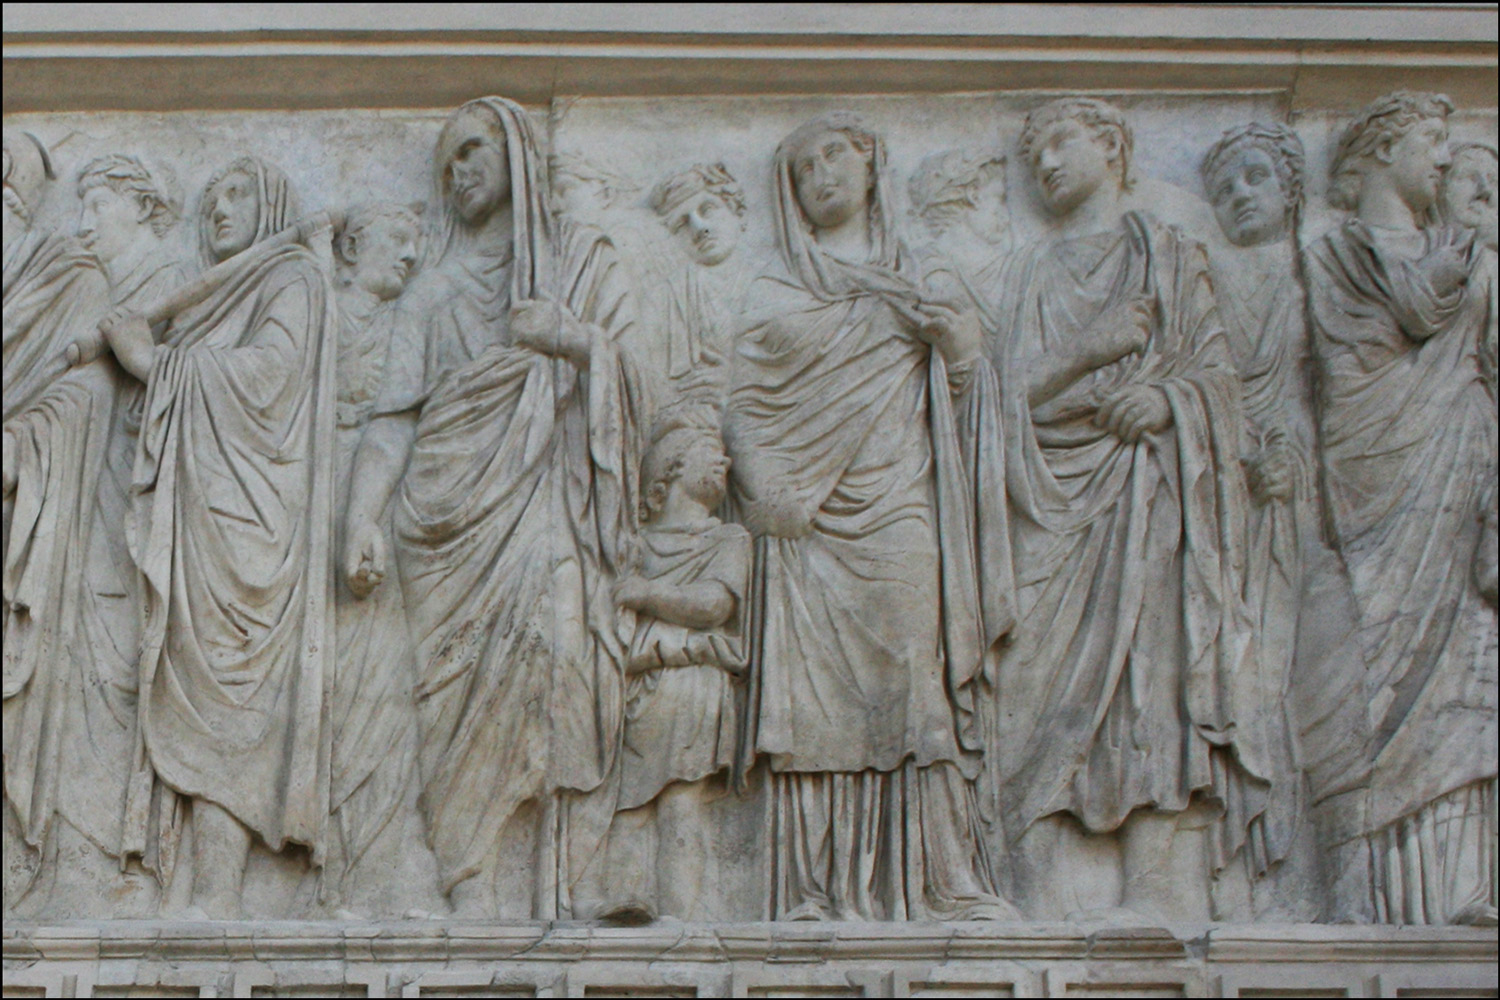 Detail of Agrippa Group on the Ara Pacis Augustae